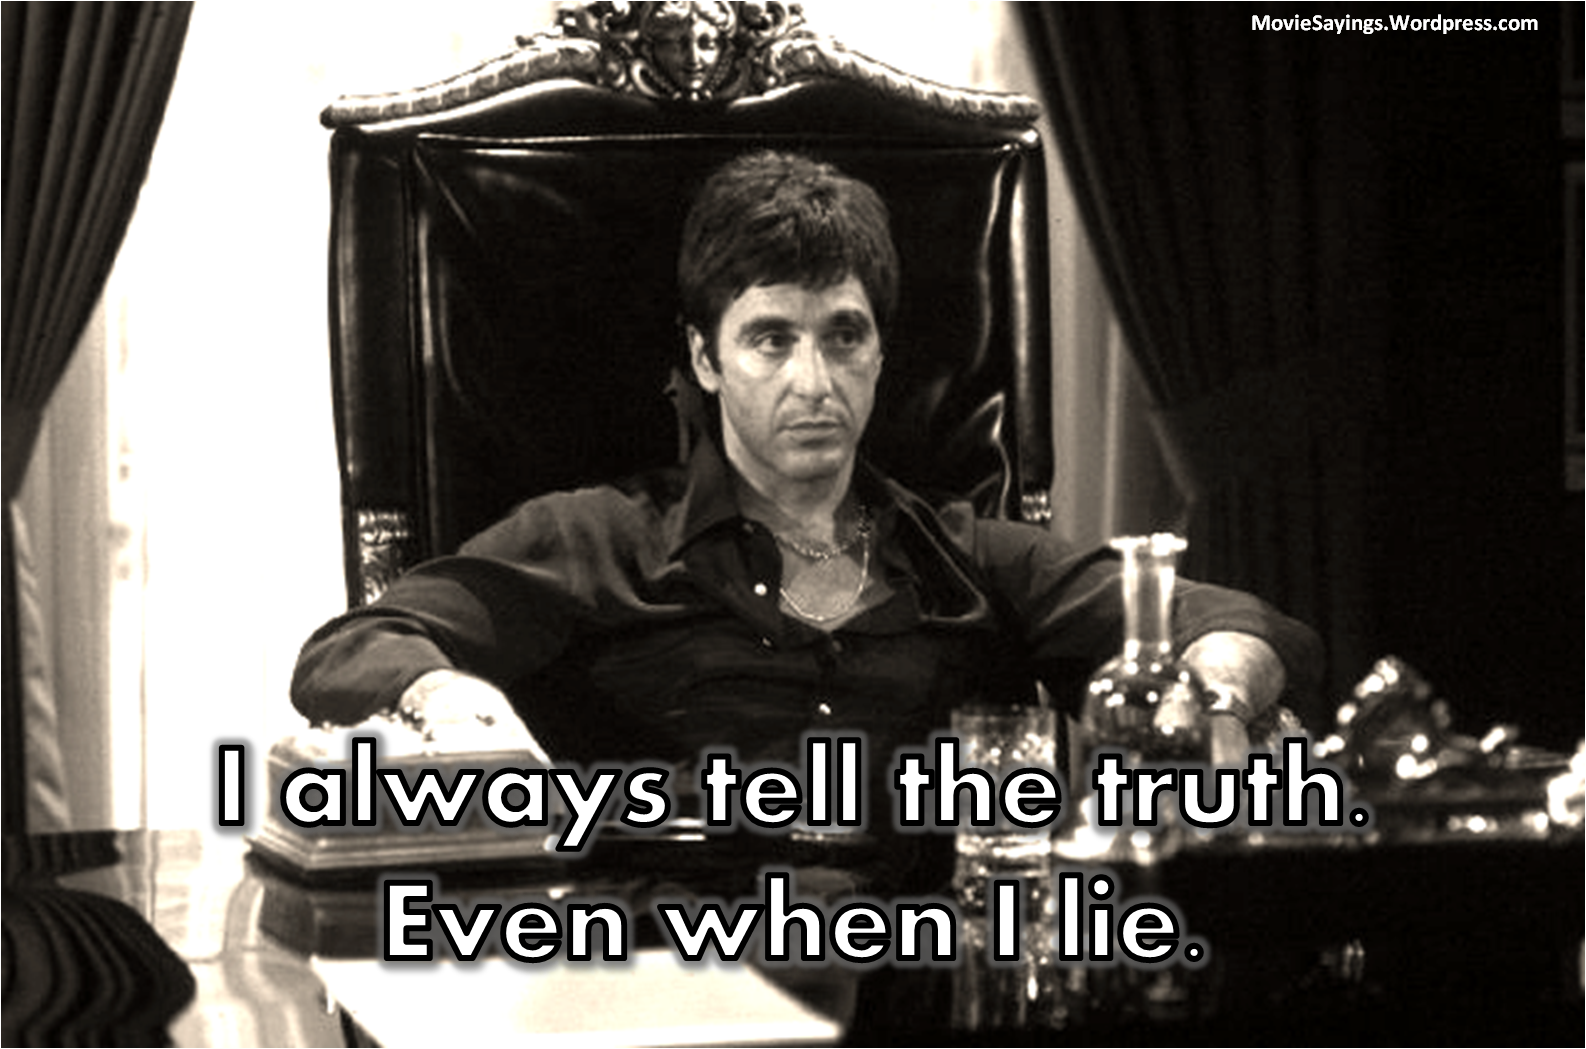 Famous Quotes From Al Pacino Movies